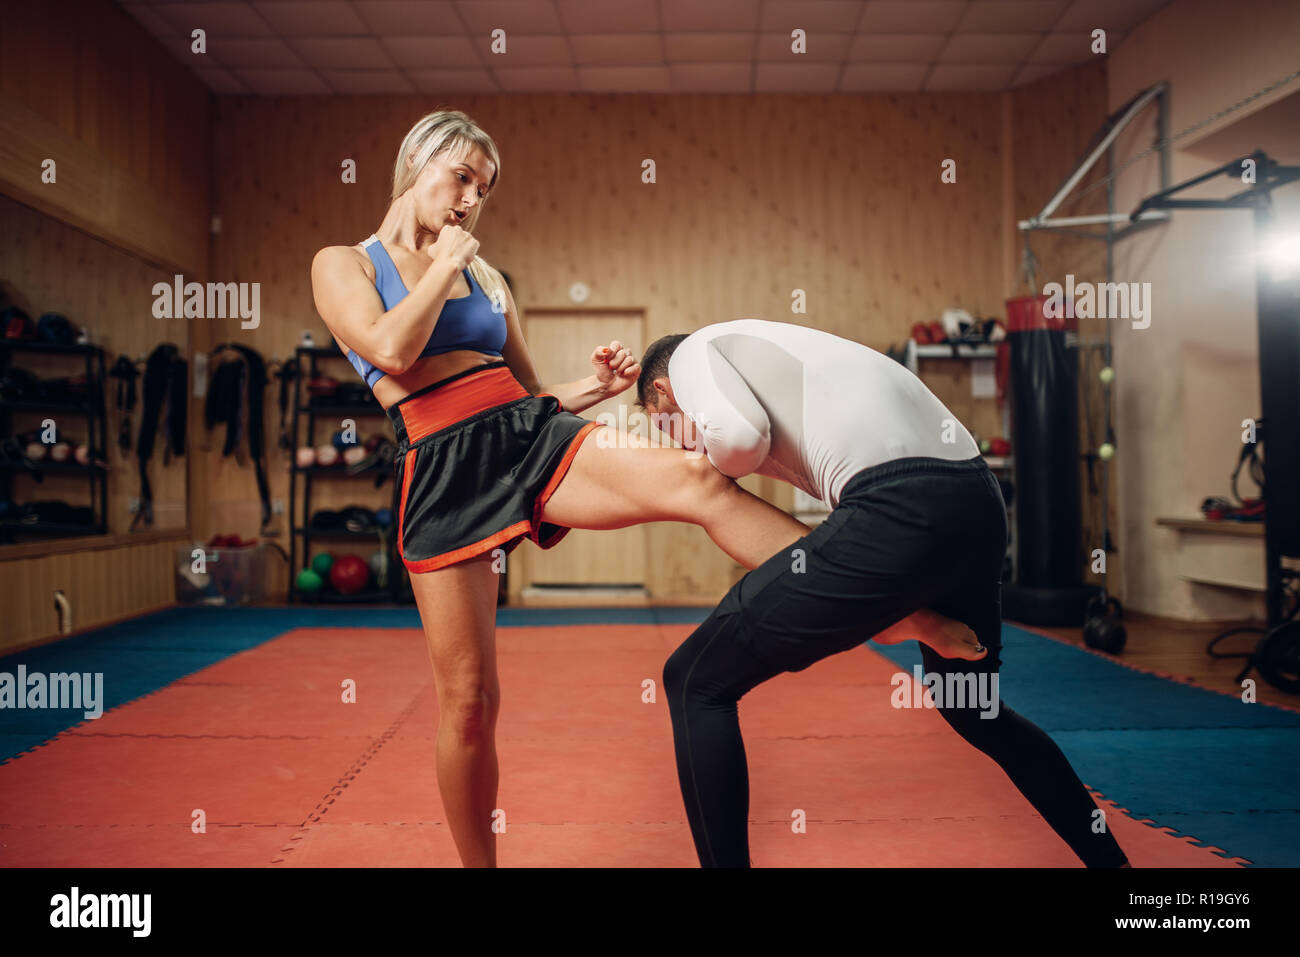 Male Groin Stock Photos  Male Groin Stock Images - Alamy-8520